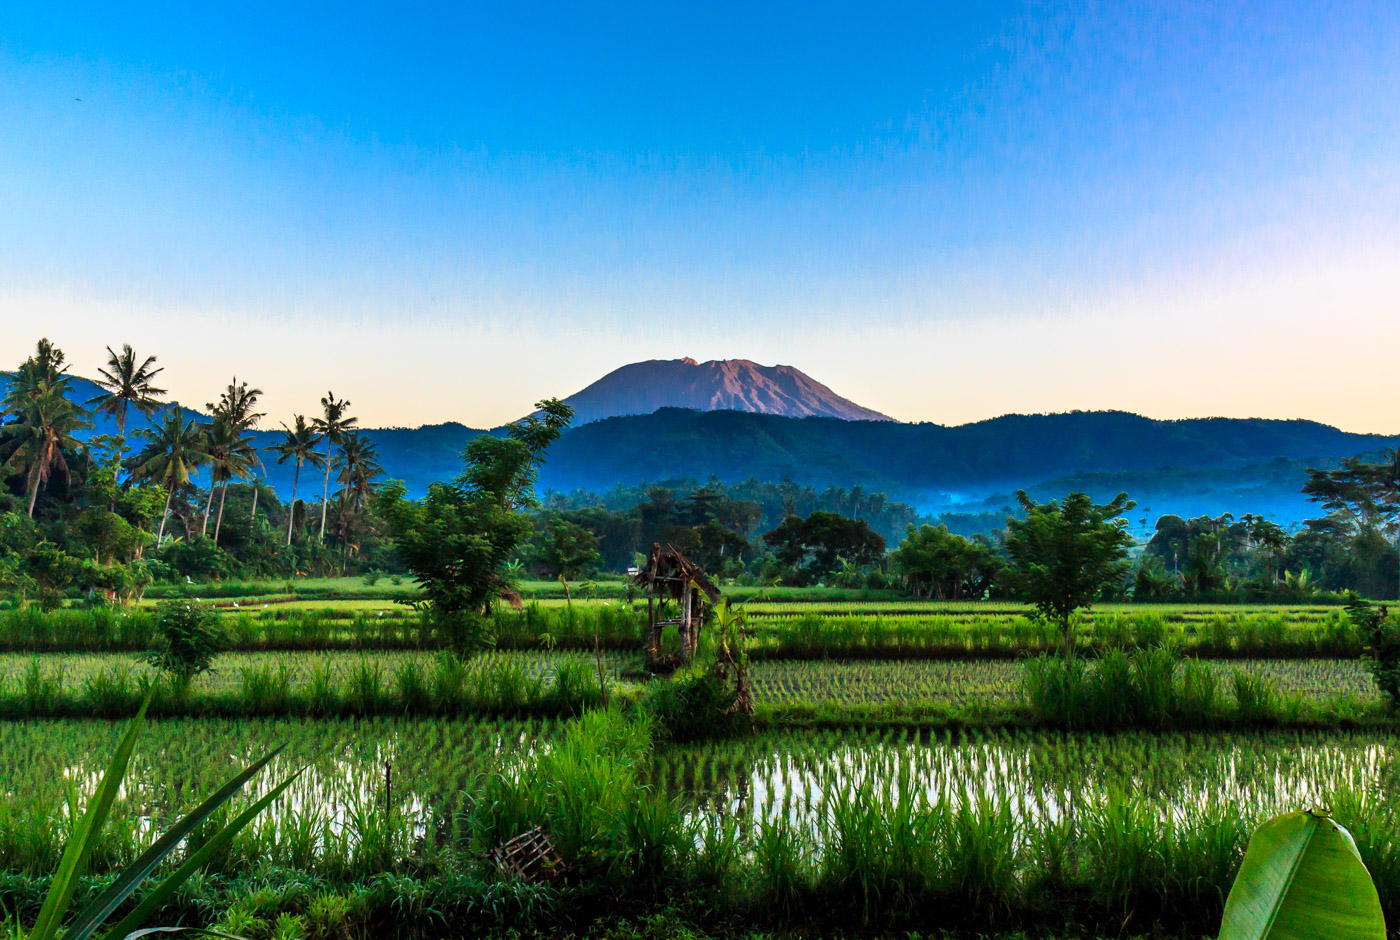 Mt. Agung looms outside of town. Yeah, I climbed that!